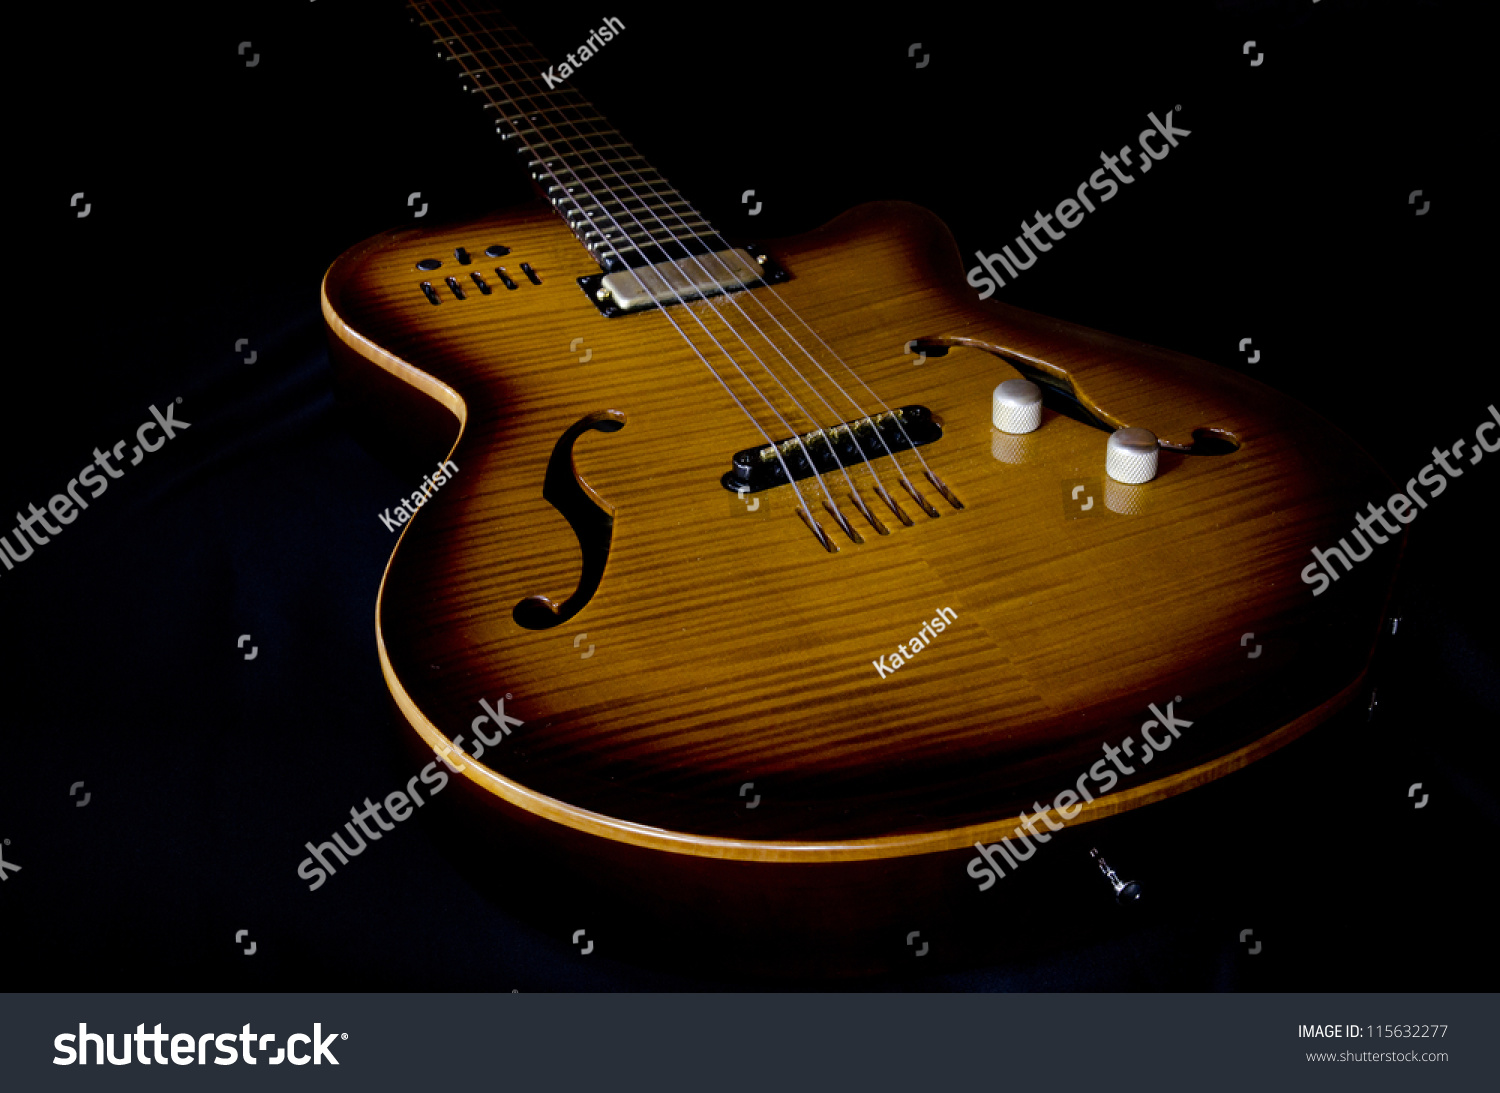 Electric Guitar On Black Background Stock Photo 115632277 1500x1093